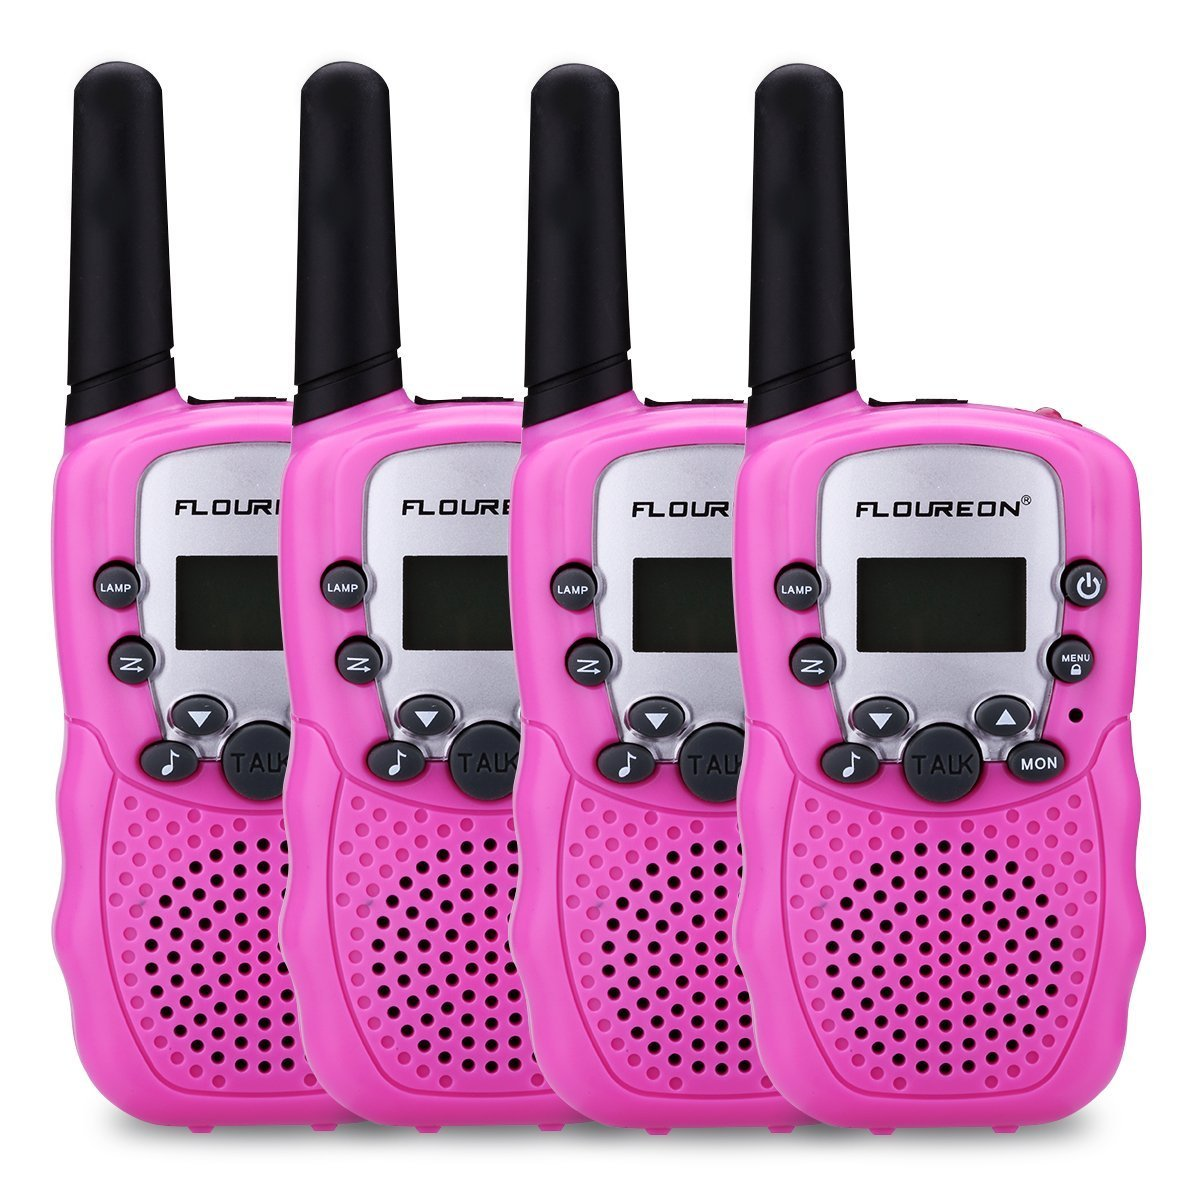 FLOUREON Kids Toy Walkie Talkies Two Way Radios Walky Talky 22 Channel Long Range UHF Handheld Outdoor Kids Toy Cellphone for Children Day/Birthday/Christmas Gift (Pink x 4)